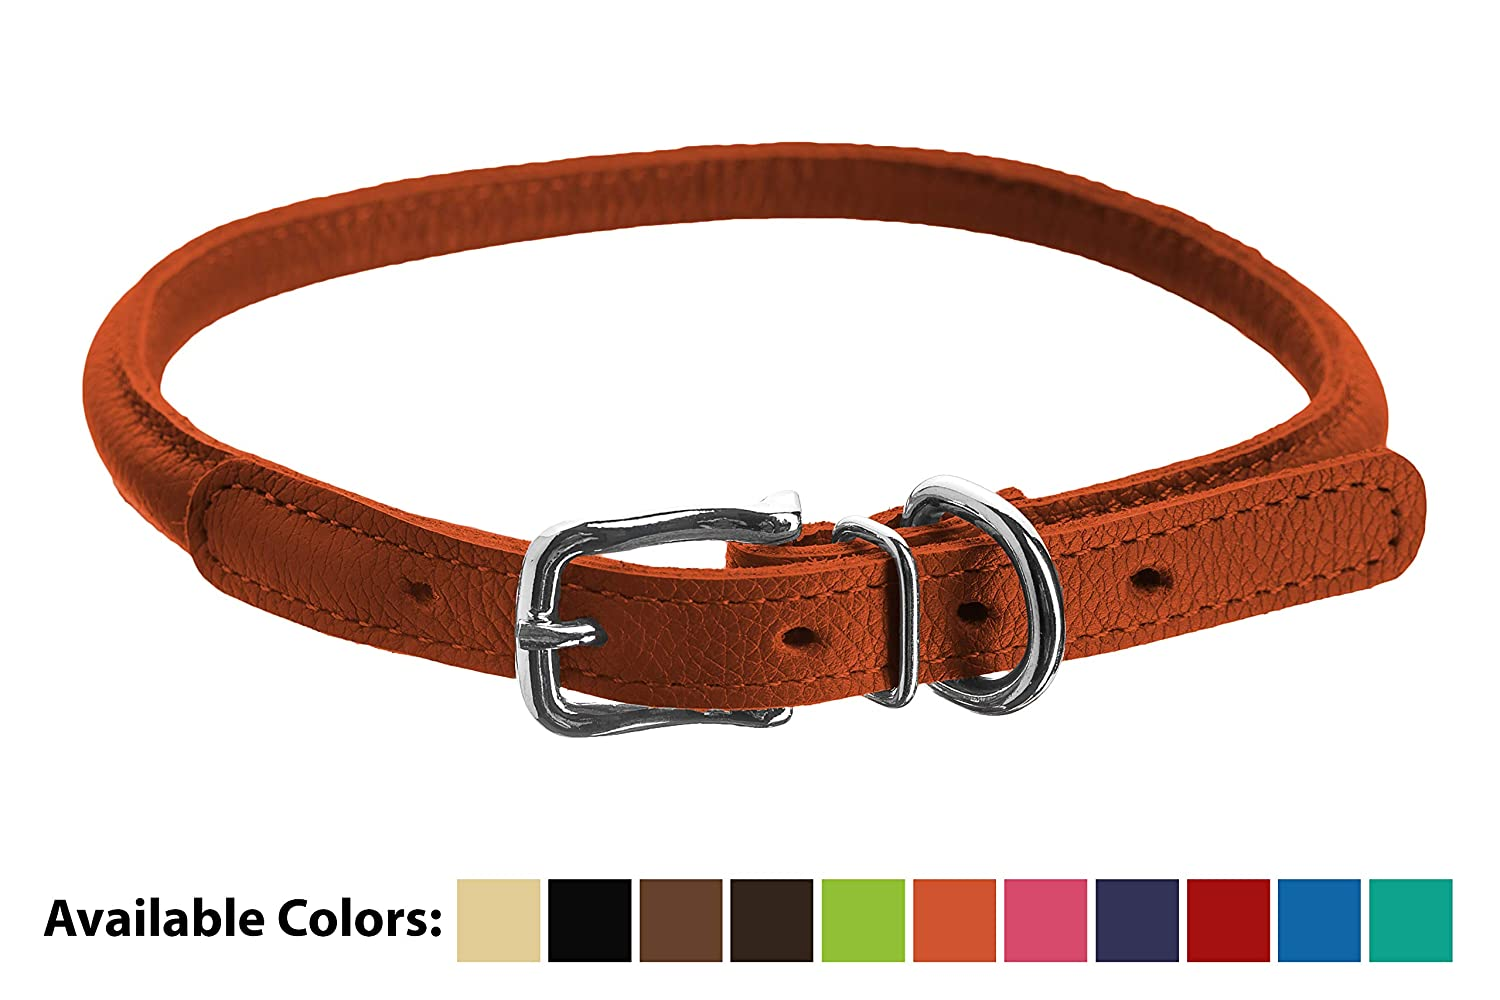 orange 15-18 x 3 8-Inch orange 15-18 x 3 8-Inch Dogline Soft Padded Rolled Round Leather Dog Collar, orange, 15-18 x 3 8-Inch